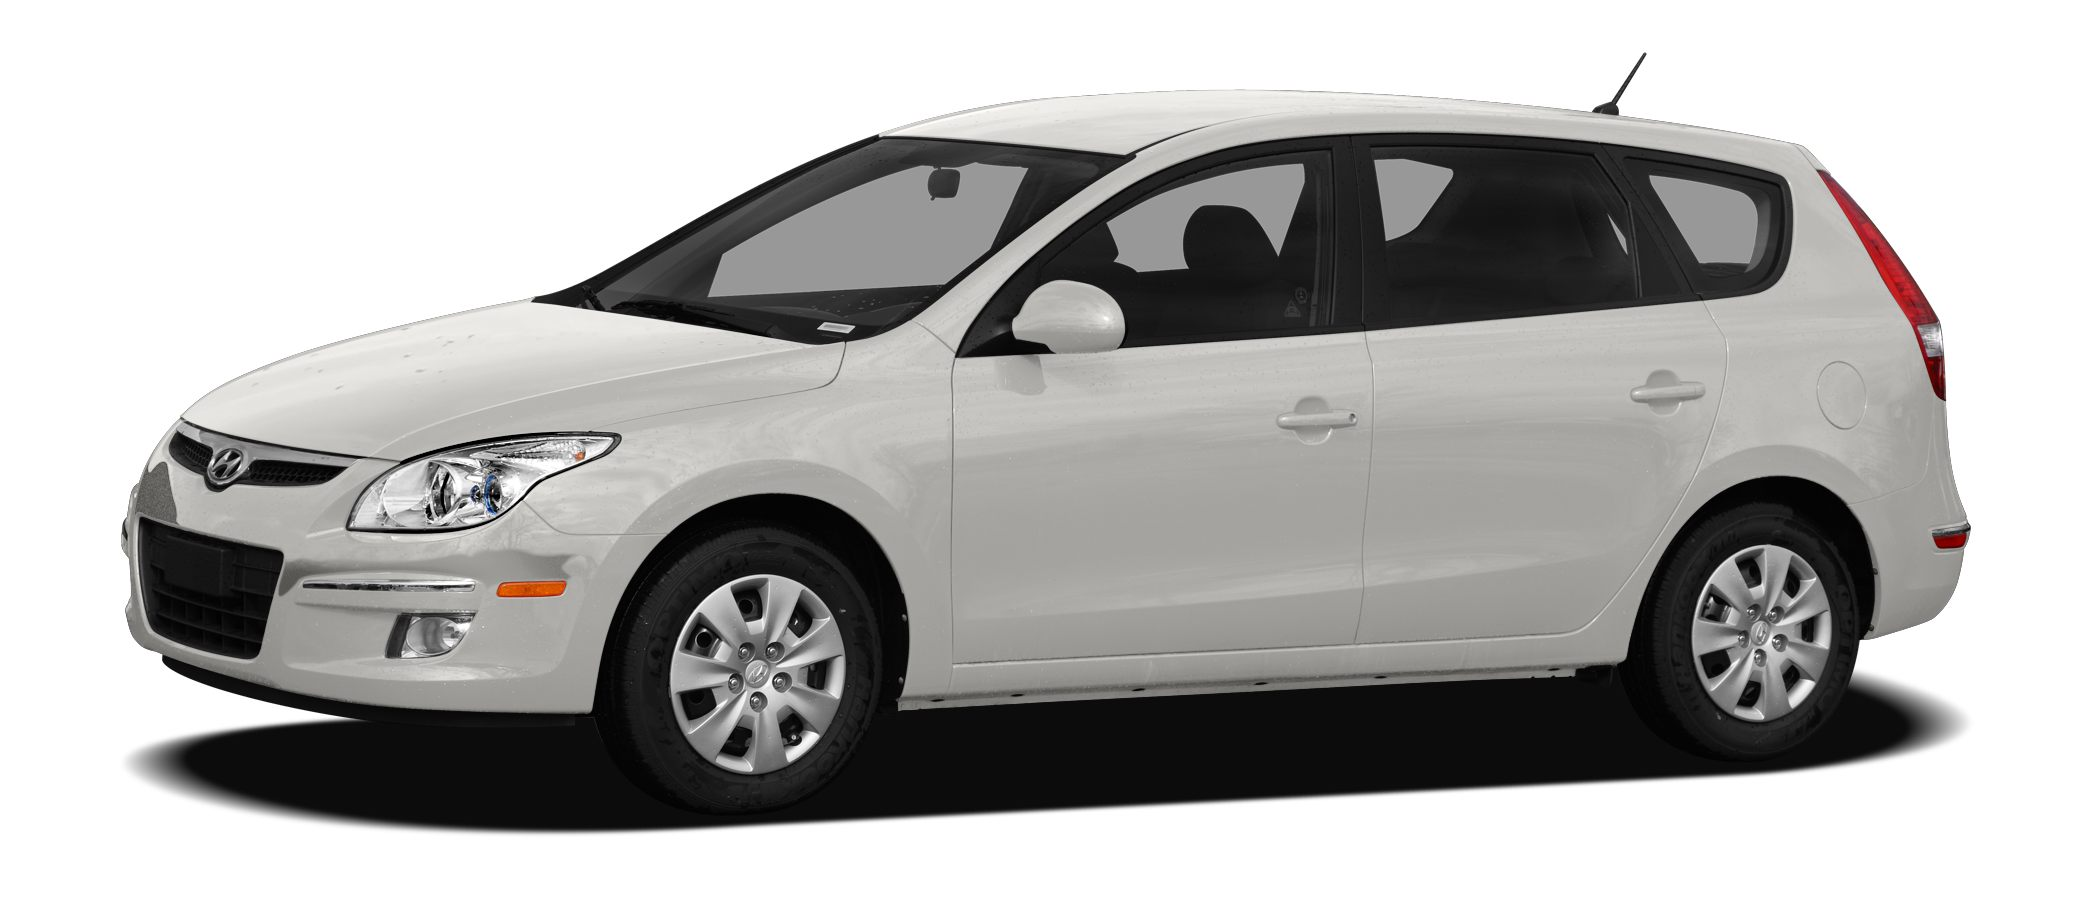 2012 Hyundai Elantra Touring GLS A great deal in Fall River What a fantastic deal Your quest for